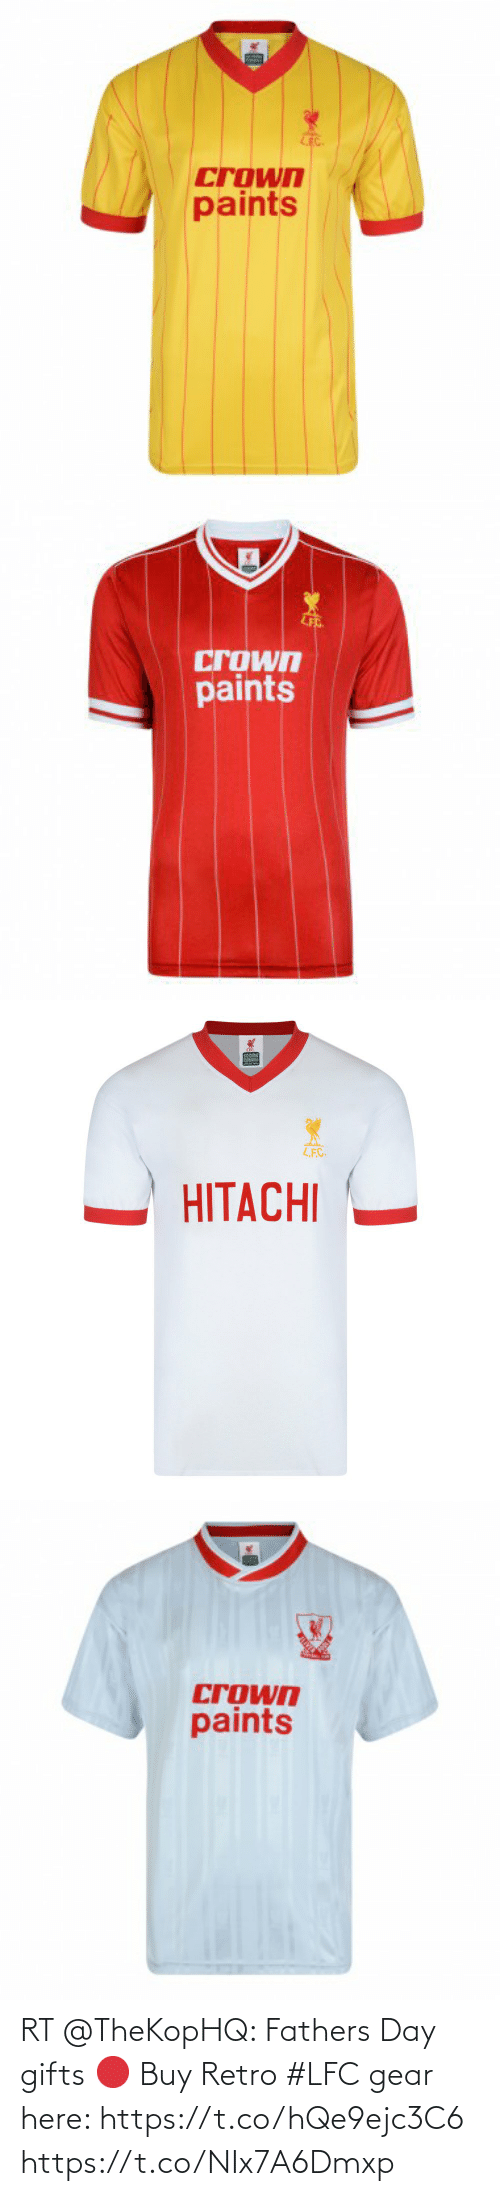 soccer: RT @TheKopHQ: Fathers Day gifts 🔴  Buy Retro #LFC gear here: https://t.co/hQe9ejc3C6 https://t.co/NIx7A6Dmxp